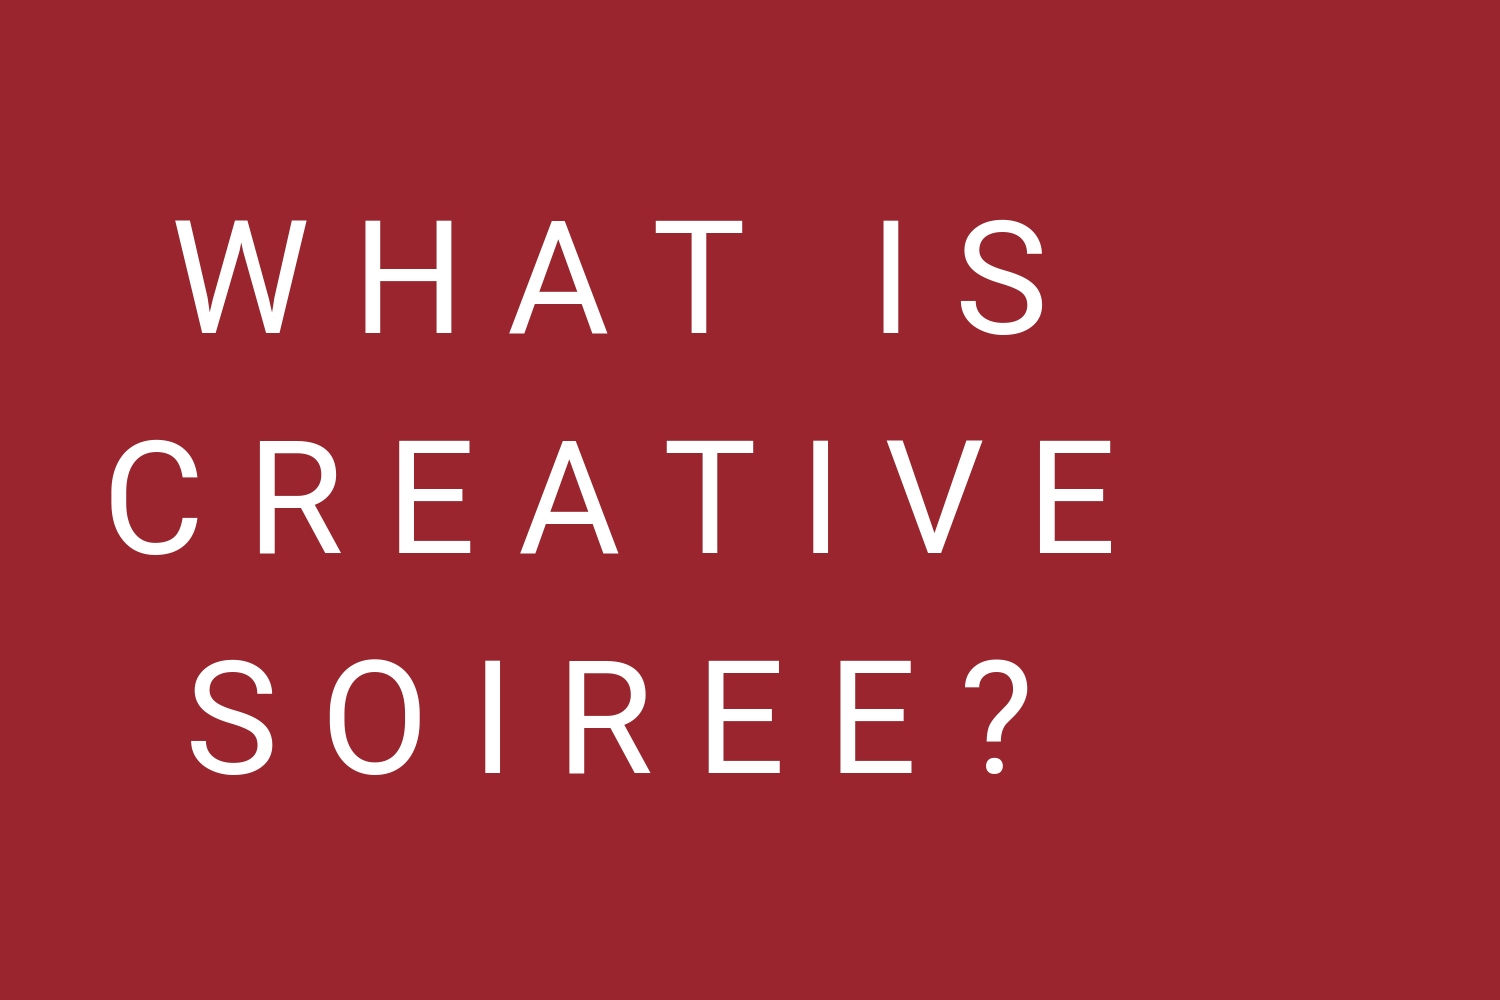 - We're a creative studio dedicated to providing one-of-a-kind educational experiences to help entrepreneurs pursue their purpose, create kickass content, and build their tribe. Grab a glass of wine and join our soiree!